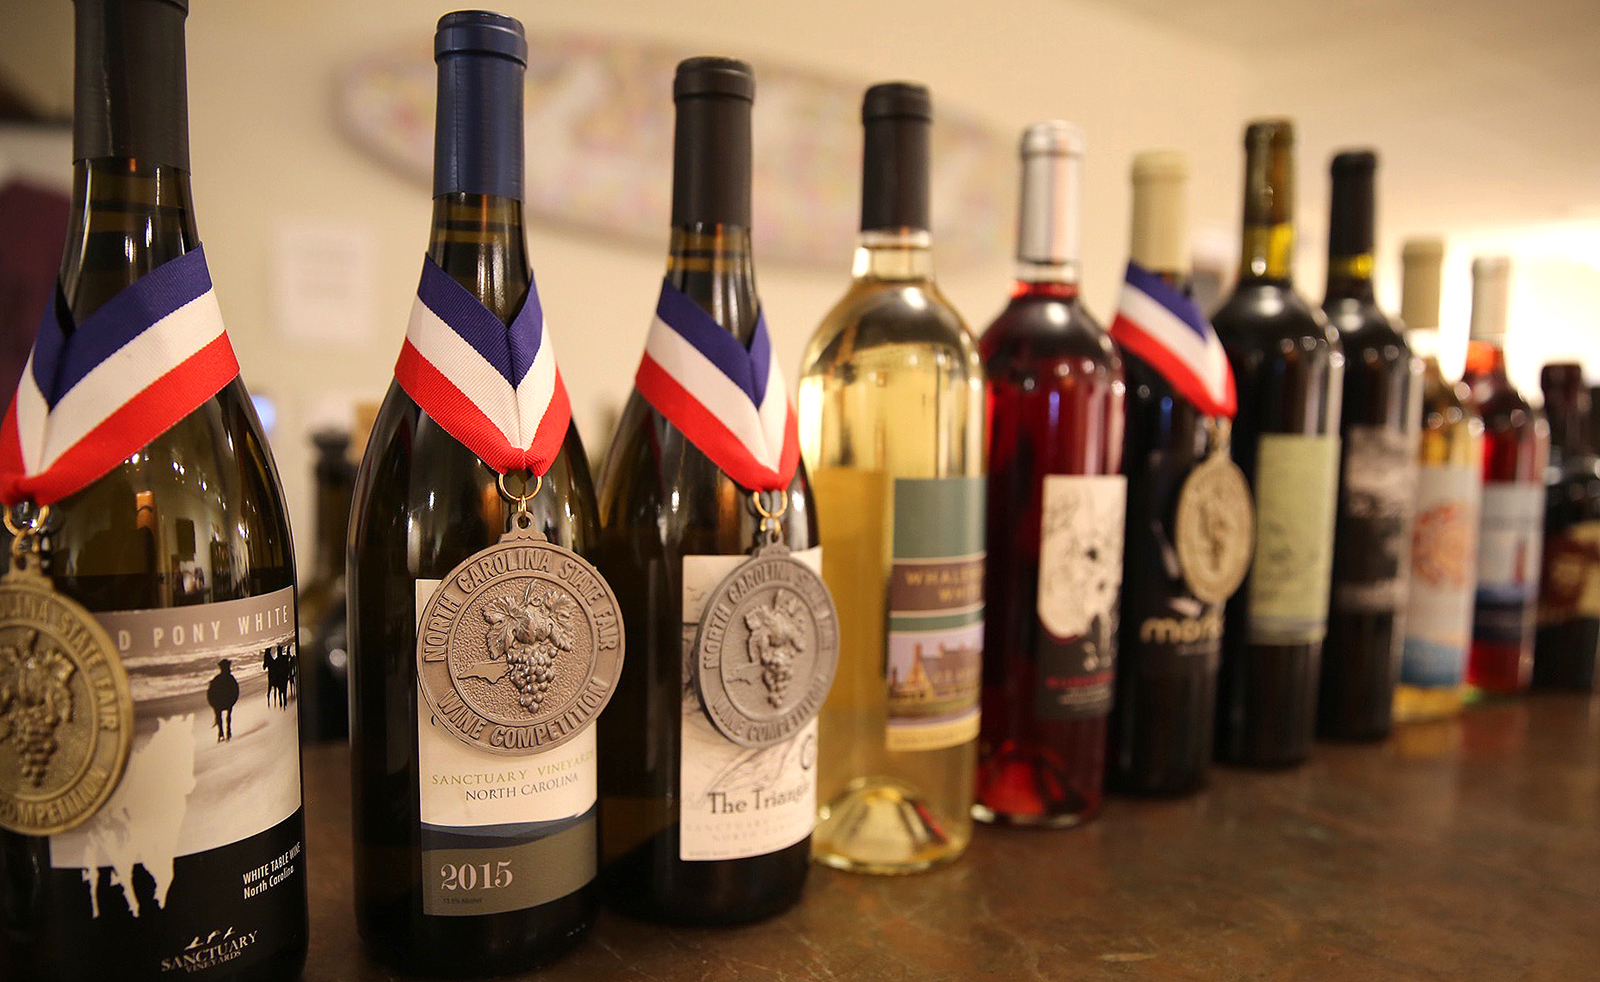 Sanctuary Vineyards has won many awards for its different wines.